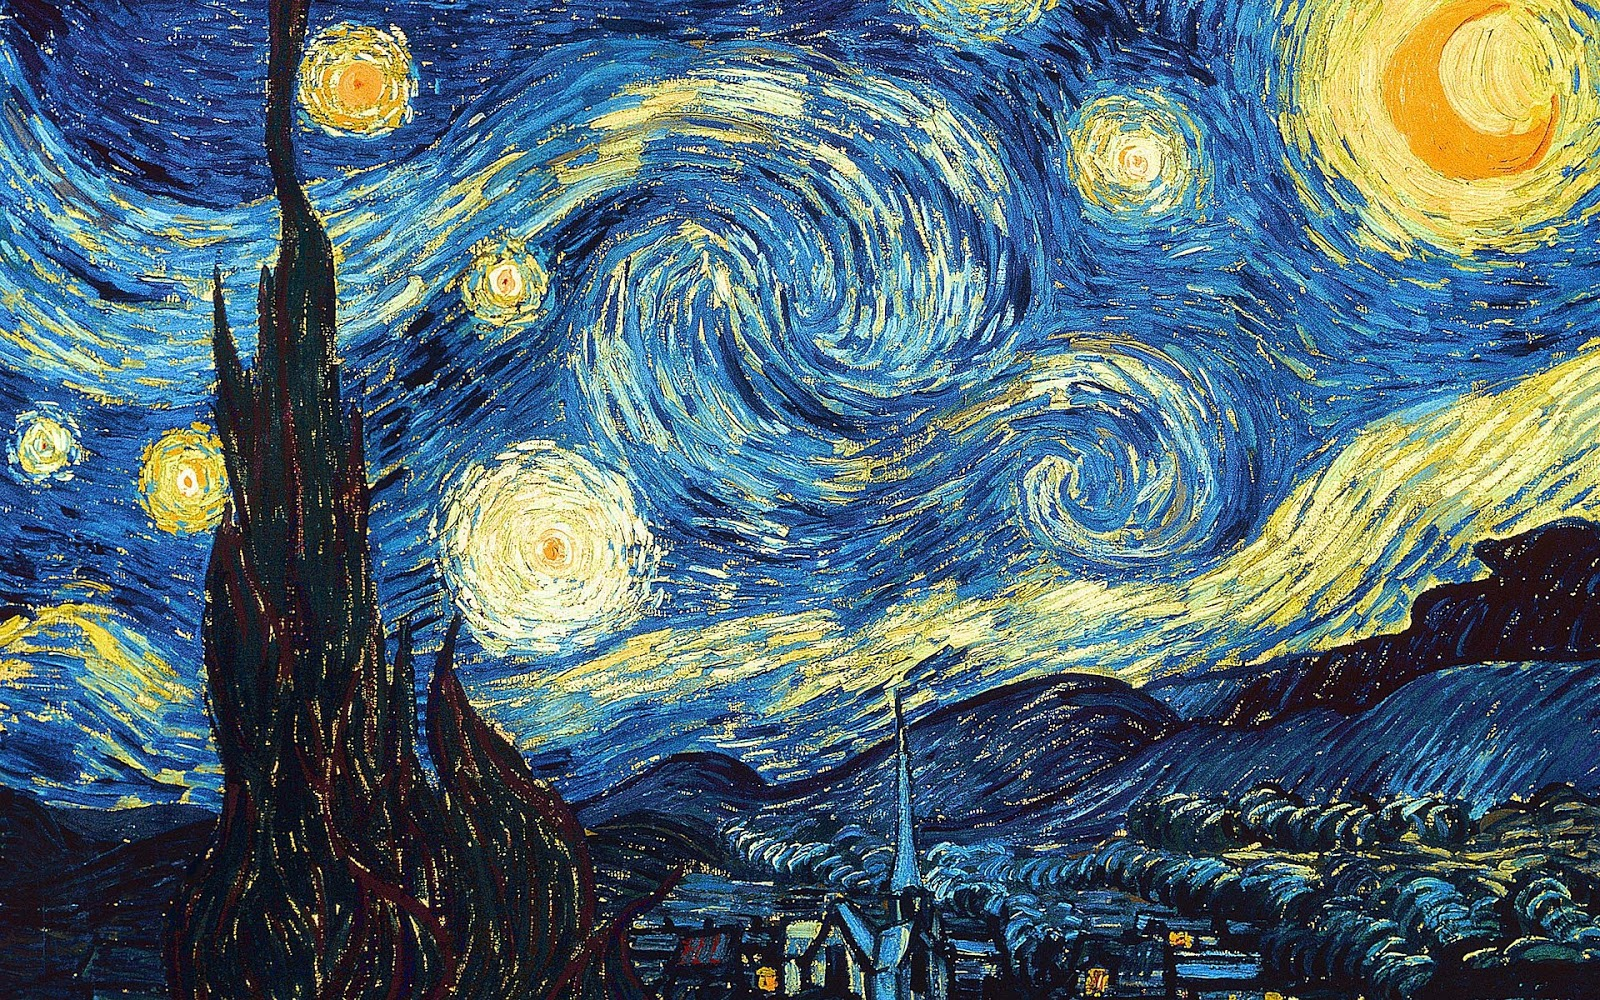 5 Amazing Artists Who Suffered from Schizophrenia and Their Works - Starry Sky by Vincent van Gogh